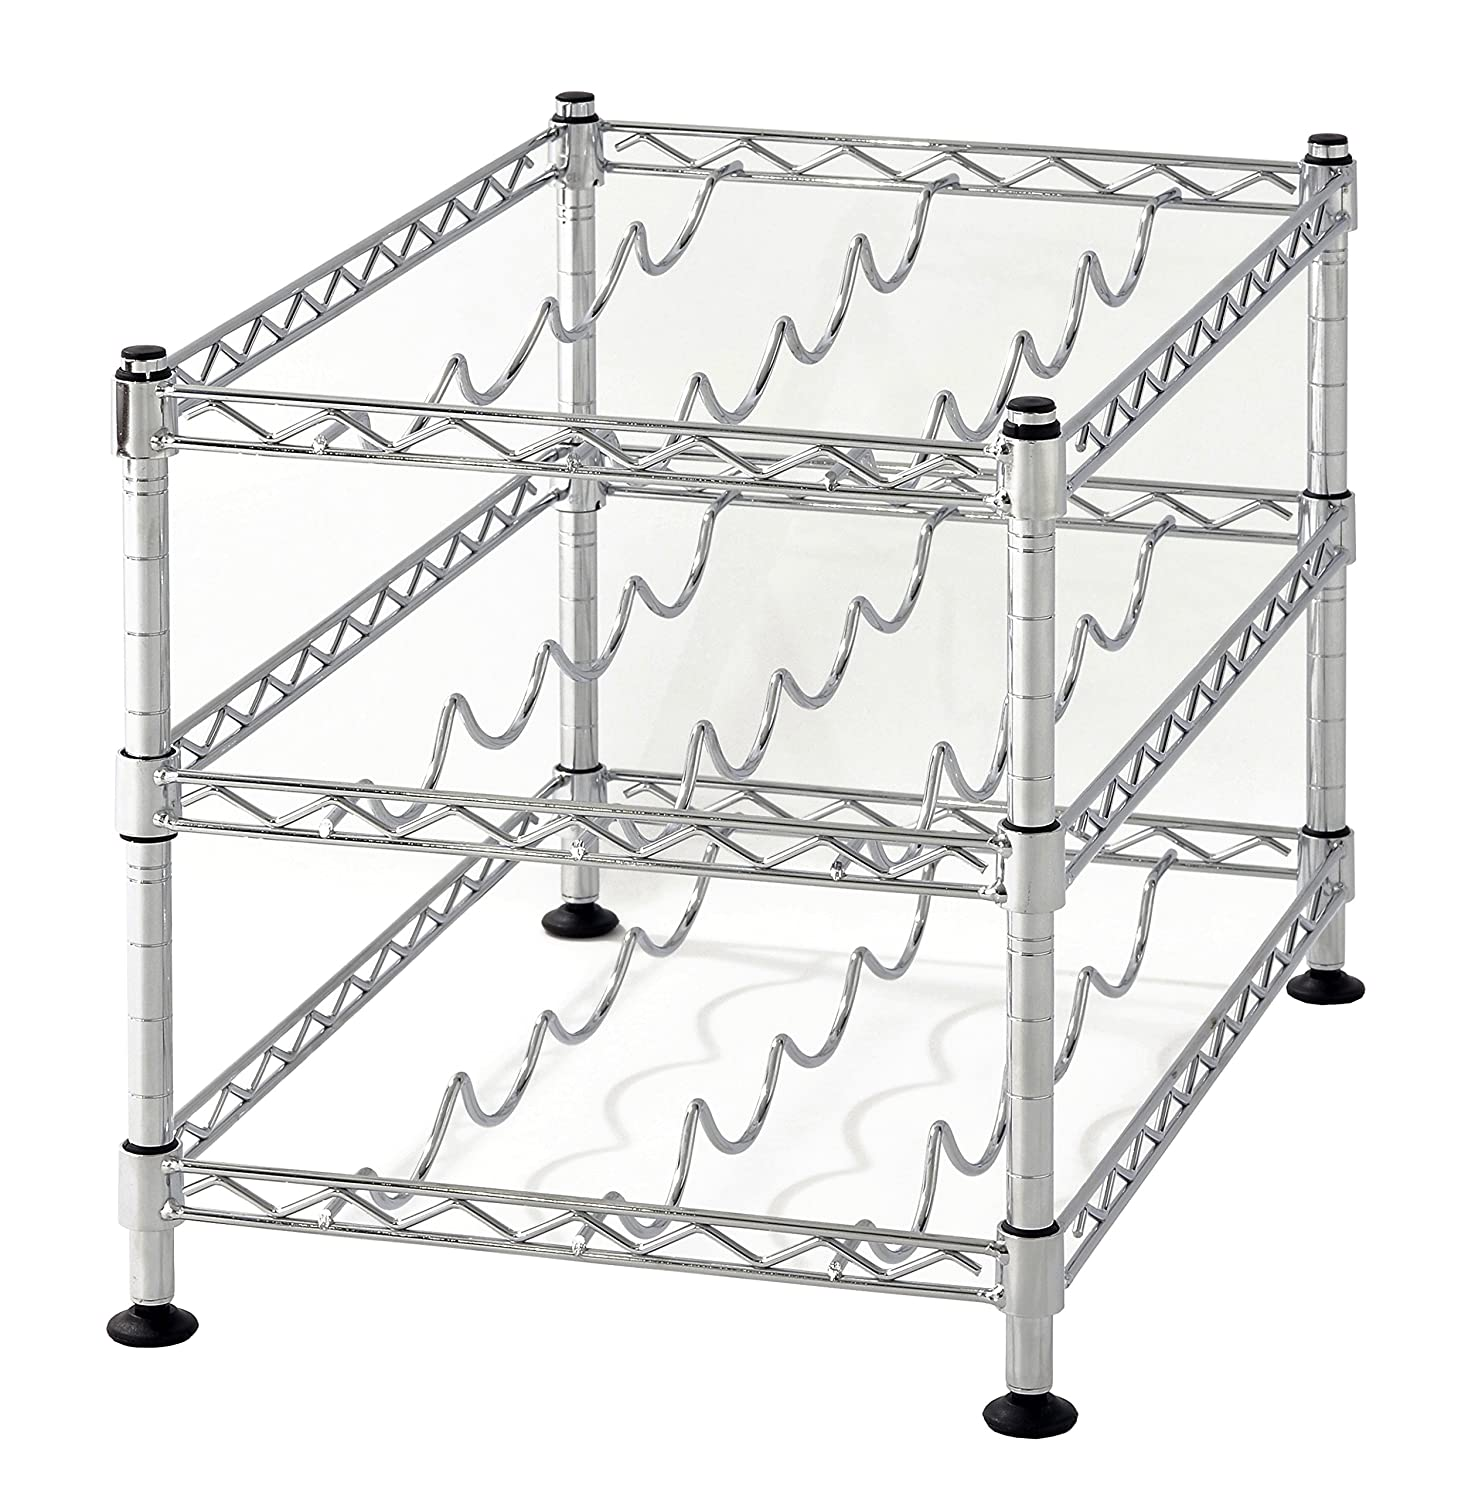 18 by 12 Muscle Rack WBS181212 12-Bottle Chrome Wine Rack 18 Width 12 Height 330 Pounds Load Capacity